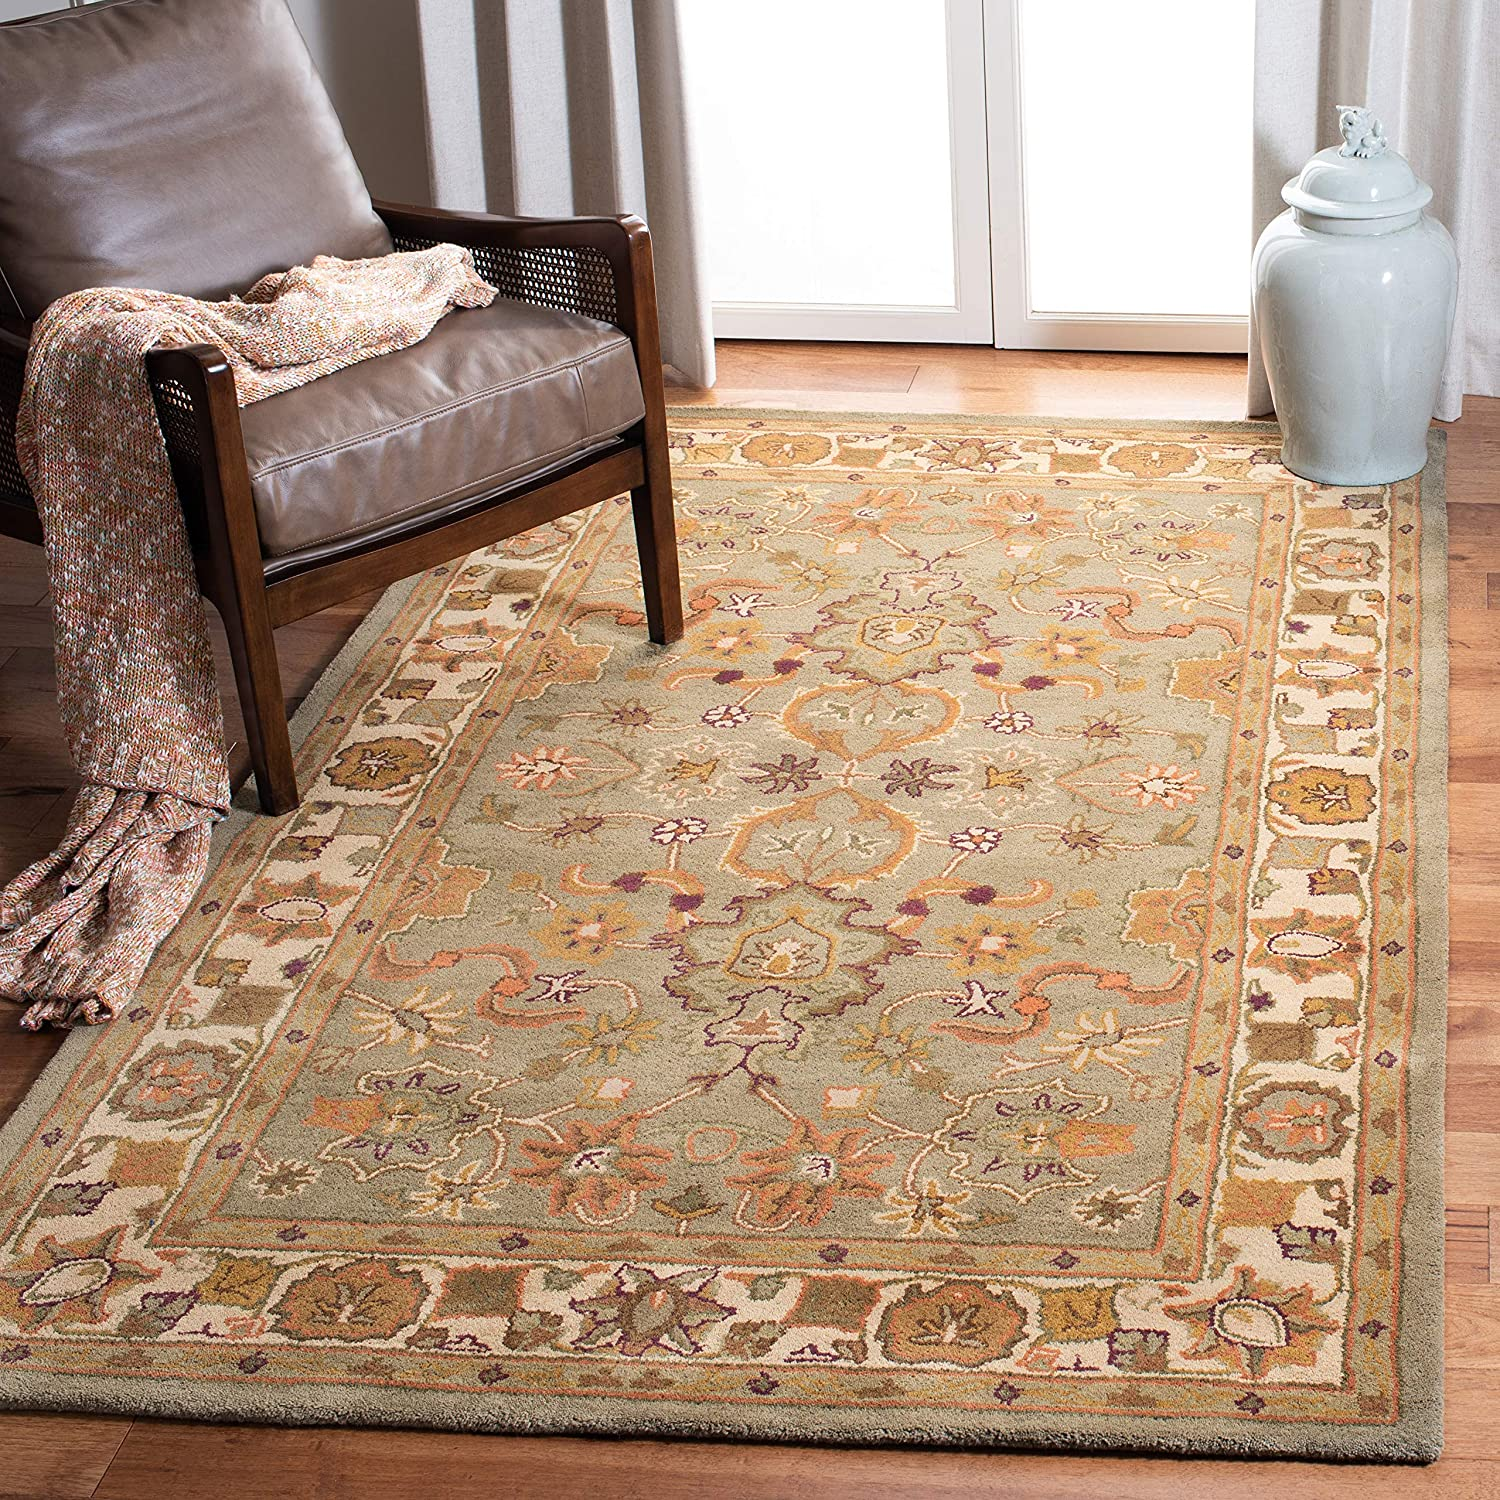 Safavieh Cheap mail order shopping Heritage Genuine Collection HG959A Traditional Orienta Handmade